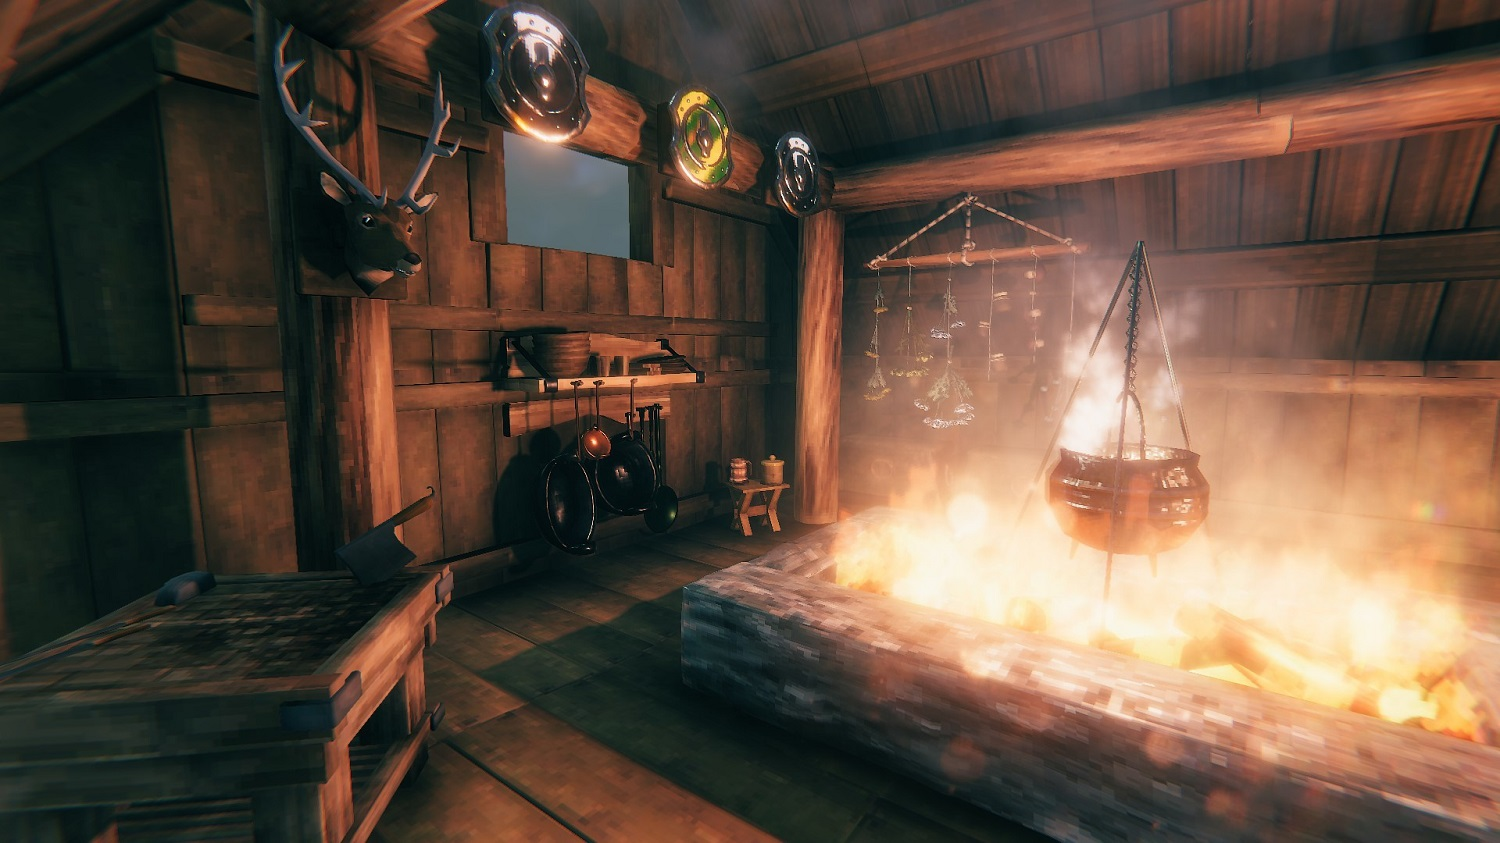 The Valheim Hearth and Home update will include new cooking stations, courtesy of Iron Gate